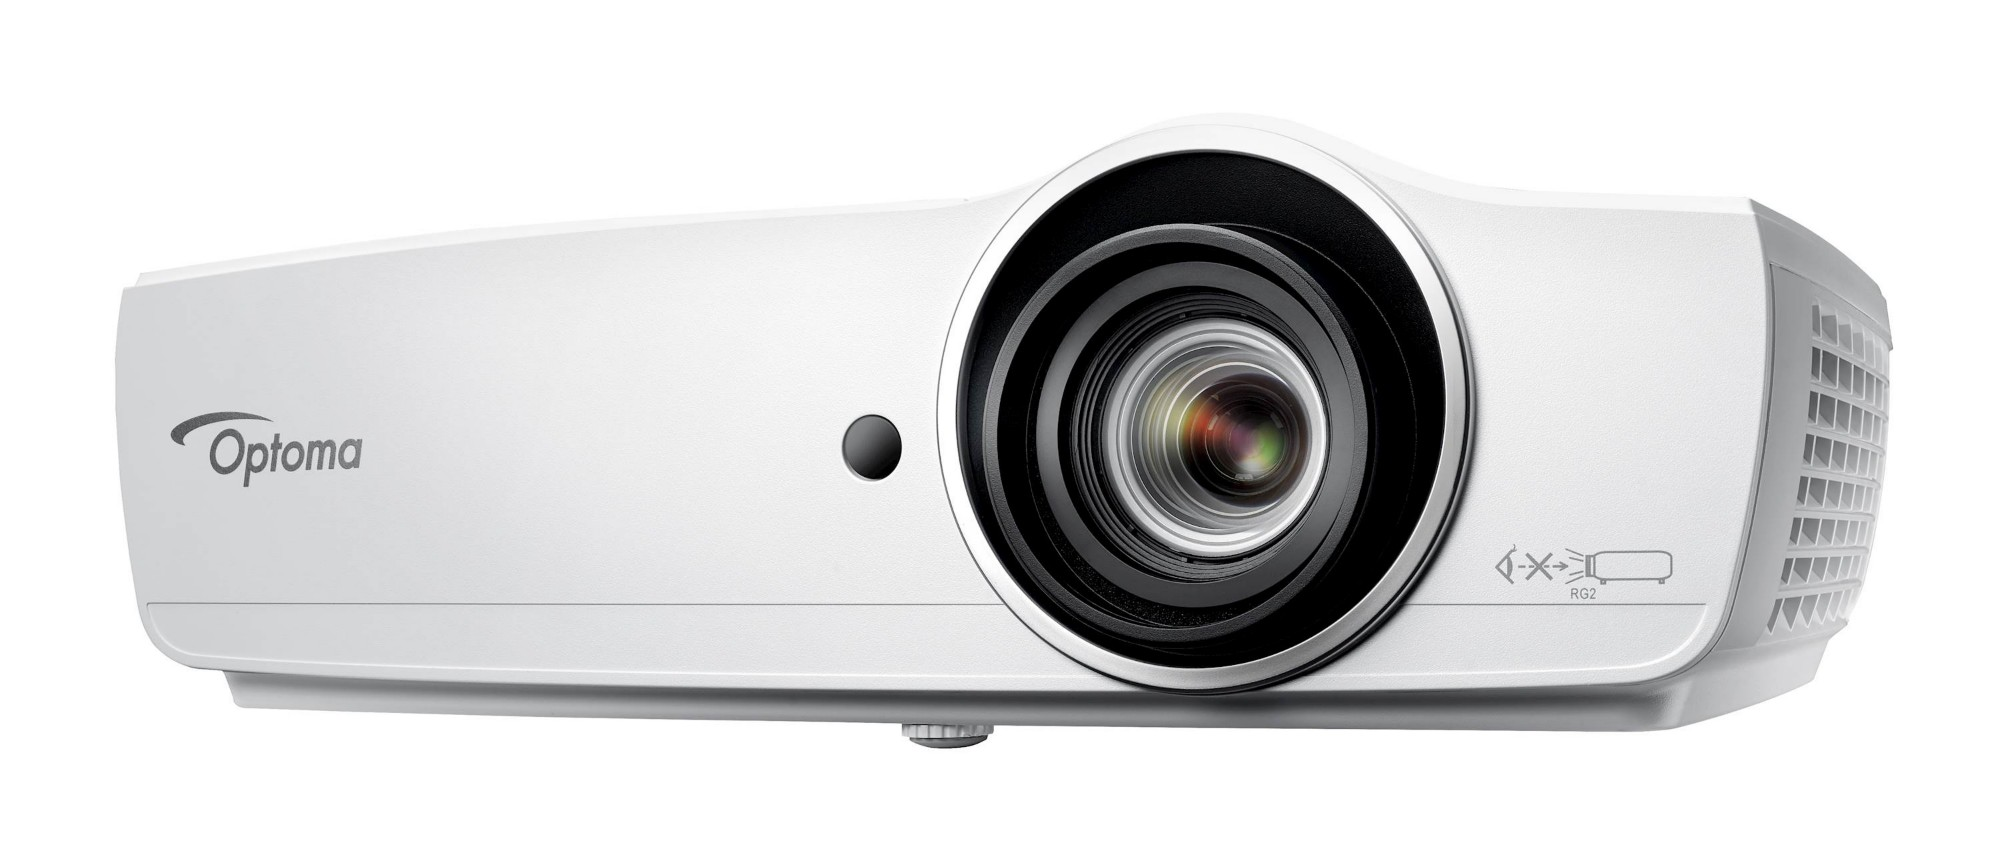 Optoma EH470 data projector 5000 ANSI lumens DLP 1080p (1920x1080) 3D Desktop projector White